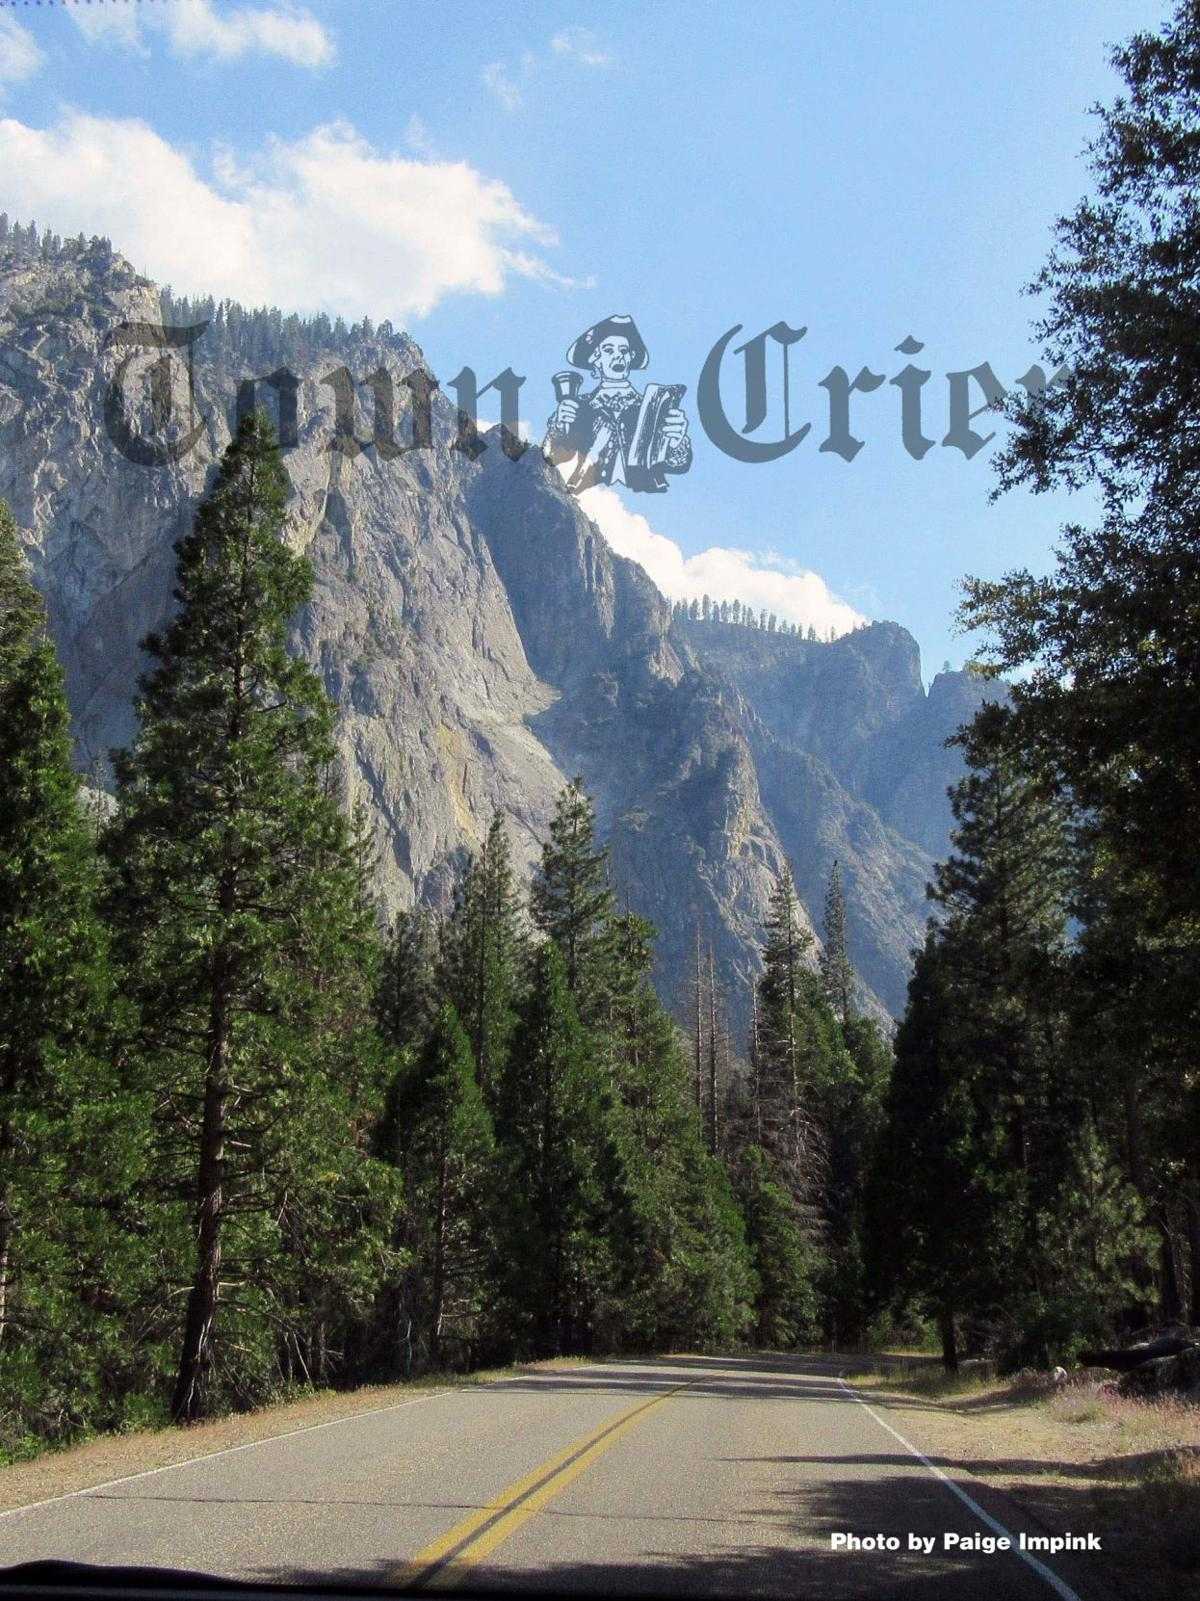 A view from the Kings Canyon Scenic Byway